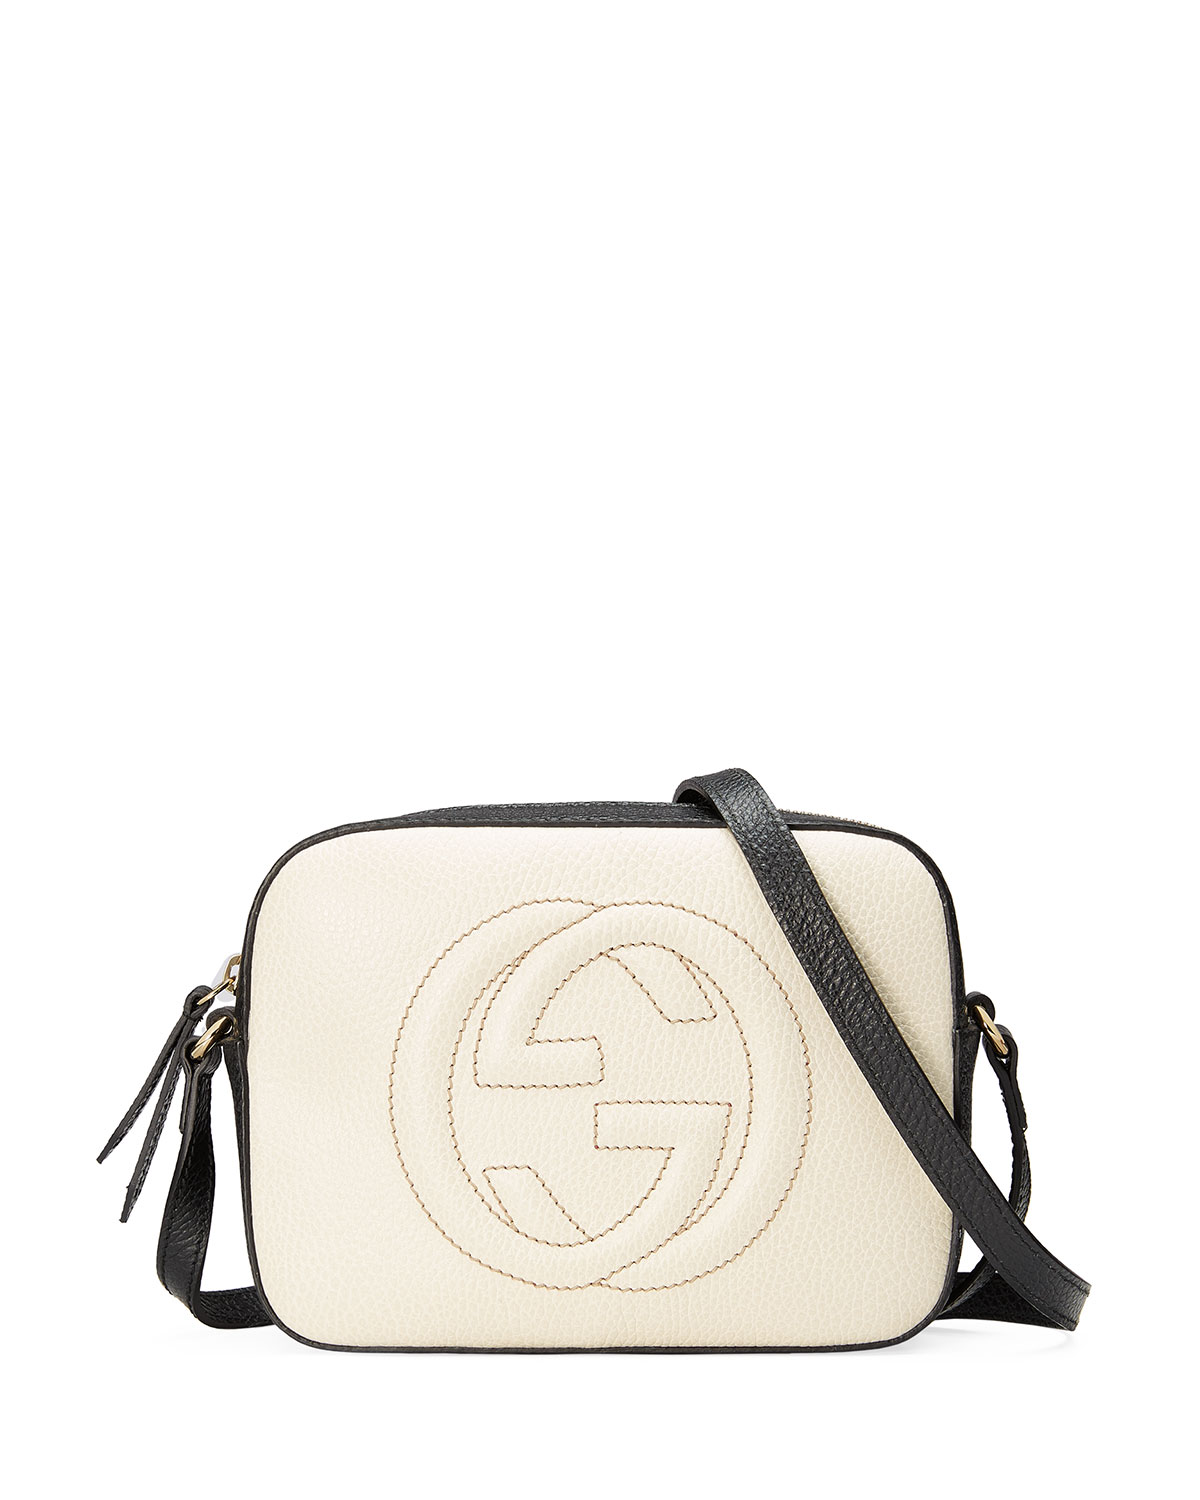 c7c6c3e7f59a5e Gucci GG Zip-Top Small Camera Disco Bag, White/Black | Neiman Marcus